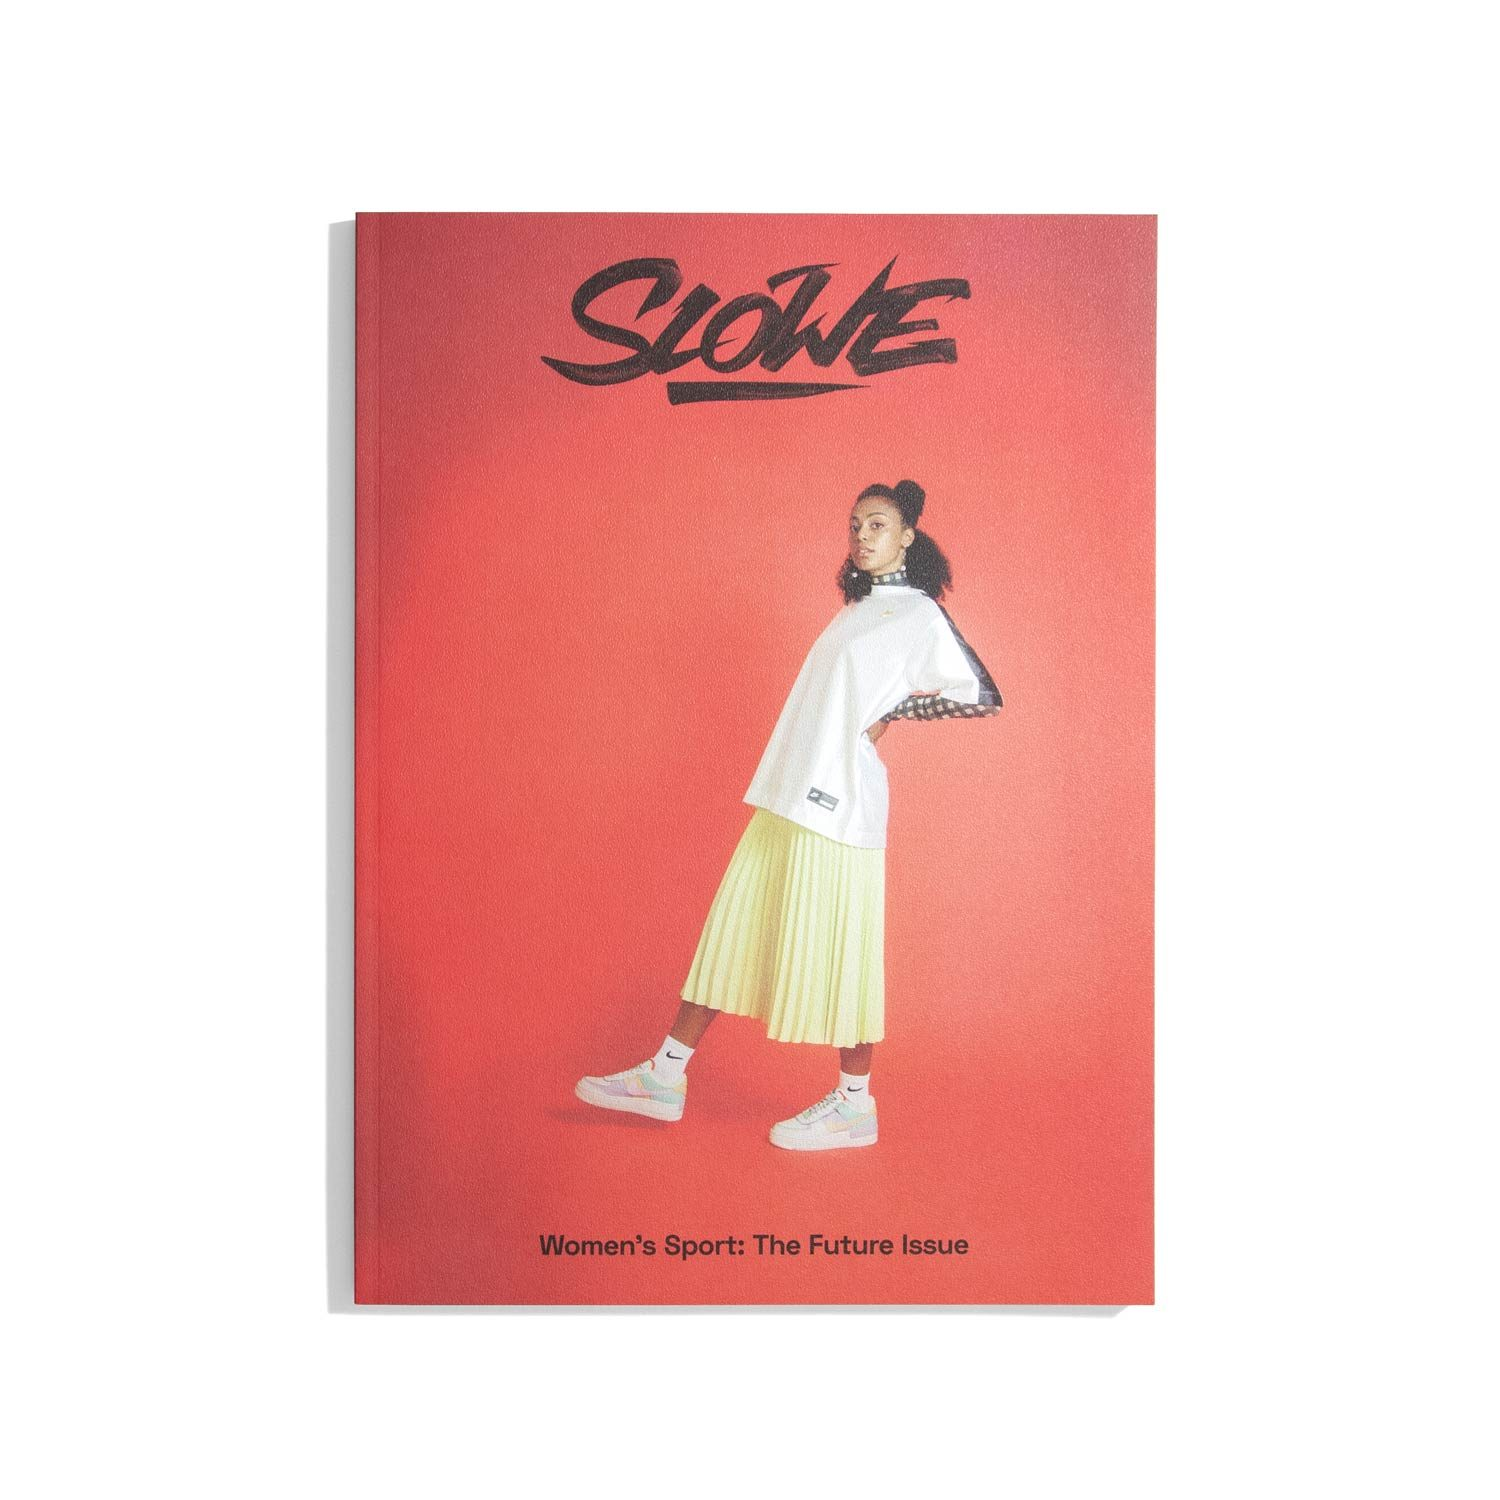 Slowe - The Future Issue